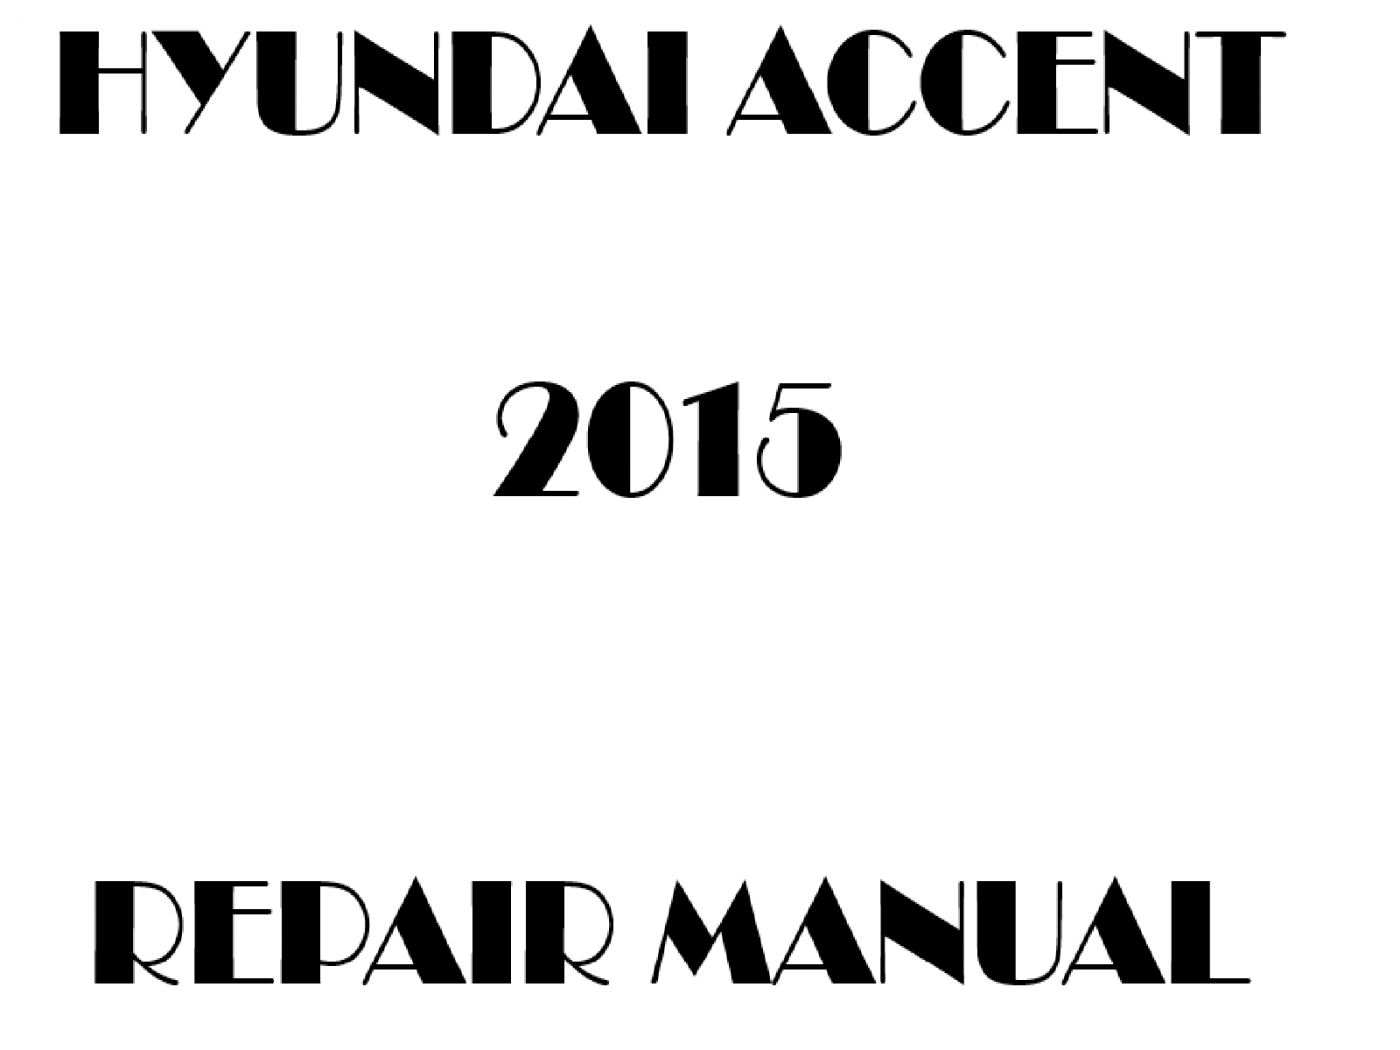 2015 Hyundai Accent repair manual